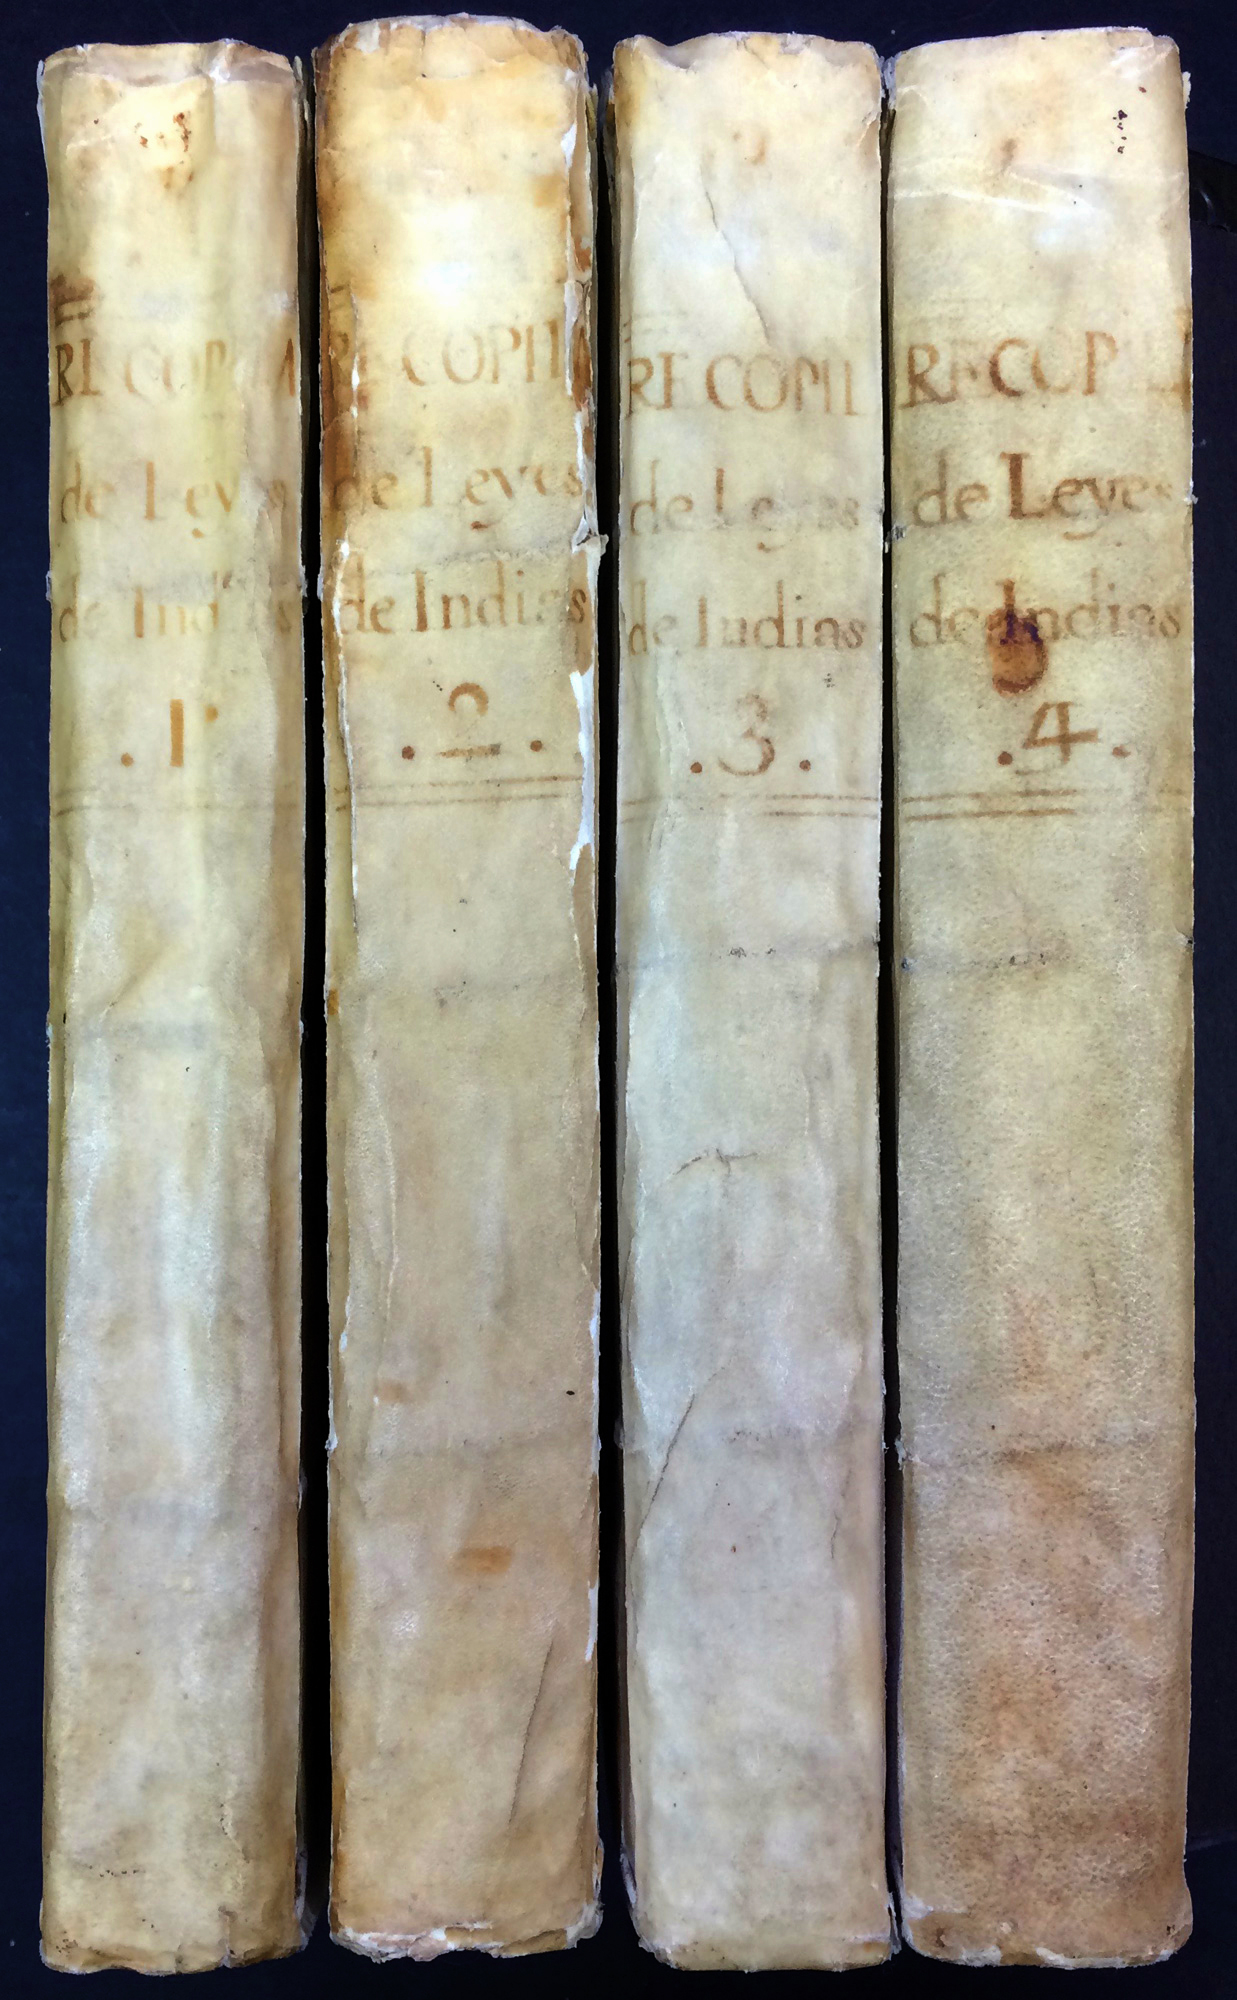 Cheminees Fontaine Pacé Vialibri Rare Books From 1756 Page 3